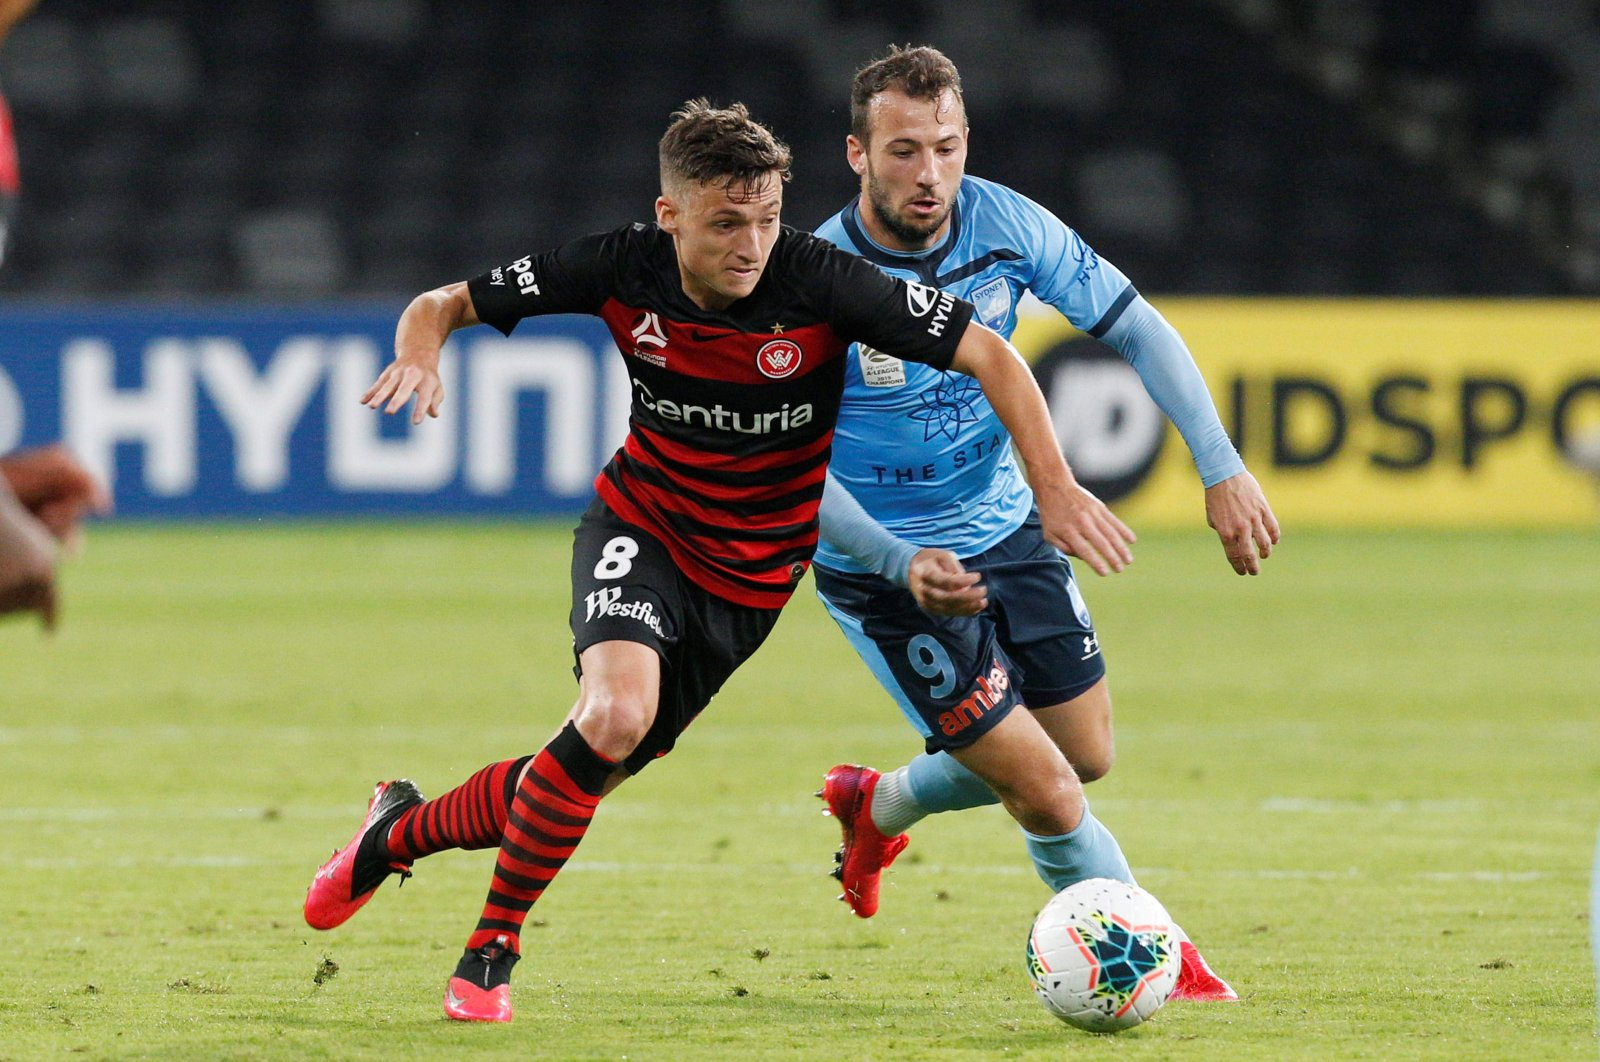 Sydney FC's Adam Le Fondre challenges Wanderers' Jordan O'Doherty during an A-League match in Sydney, Saturday, March 21, 2020. (AFP Photo)